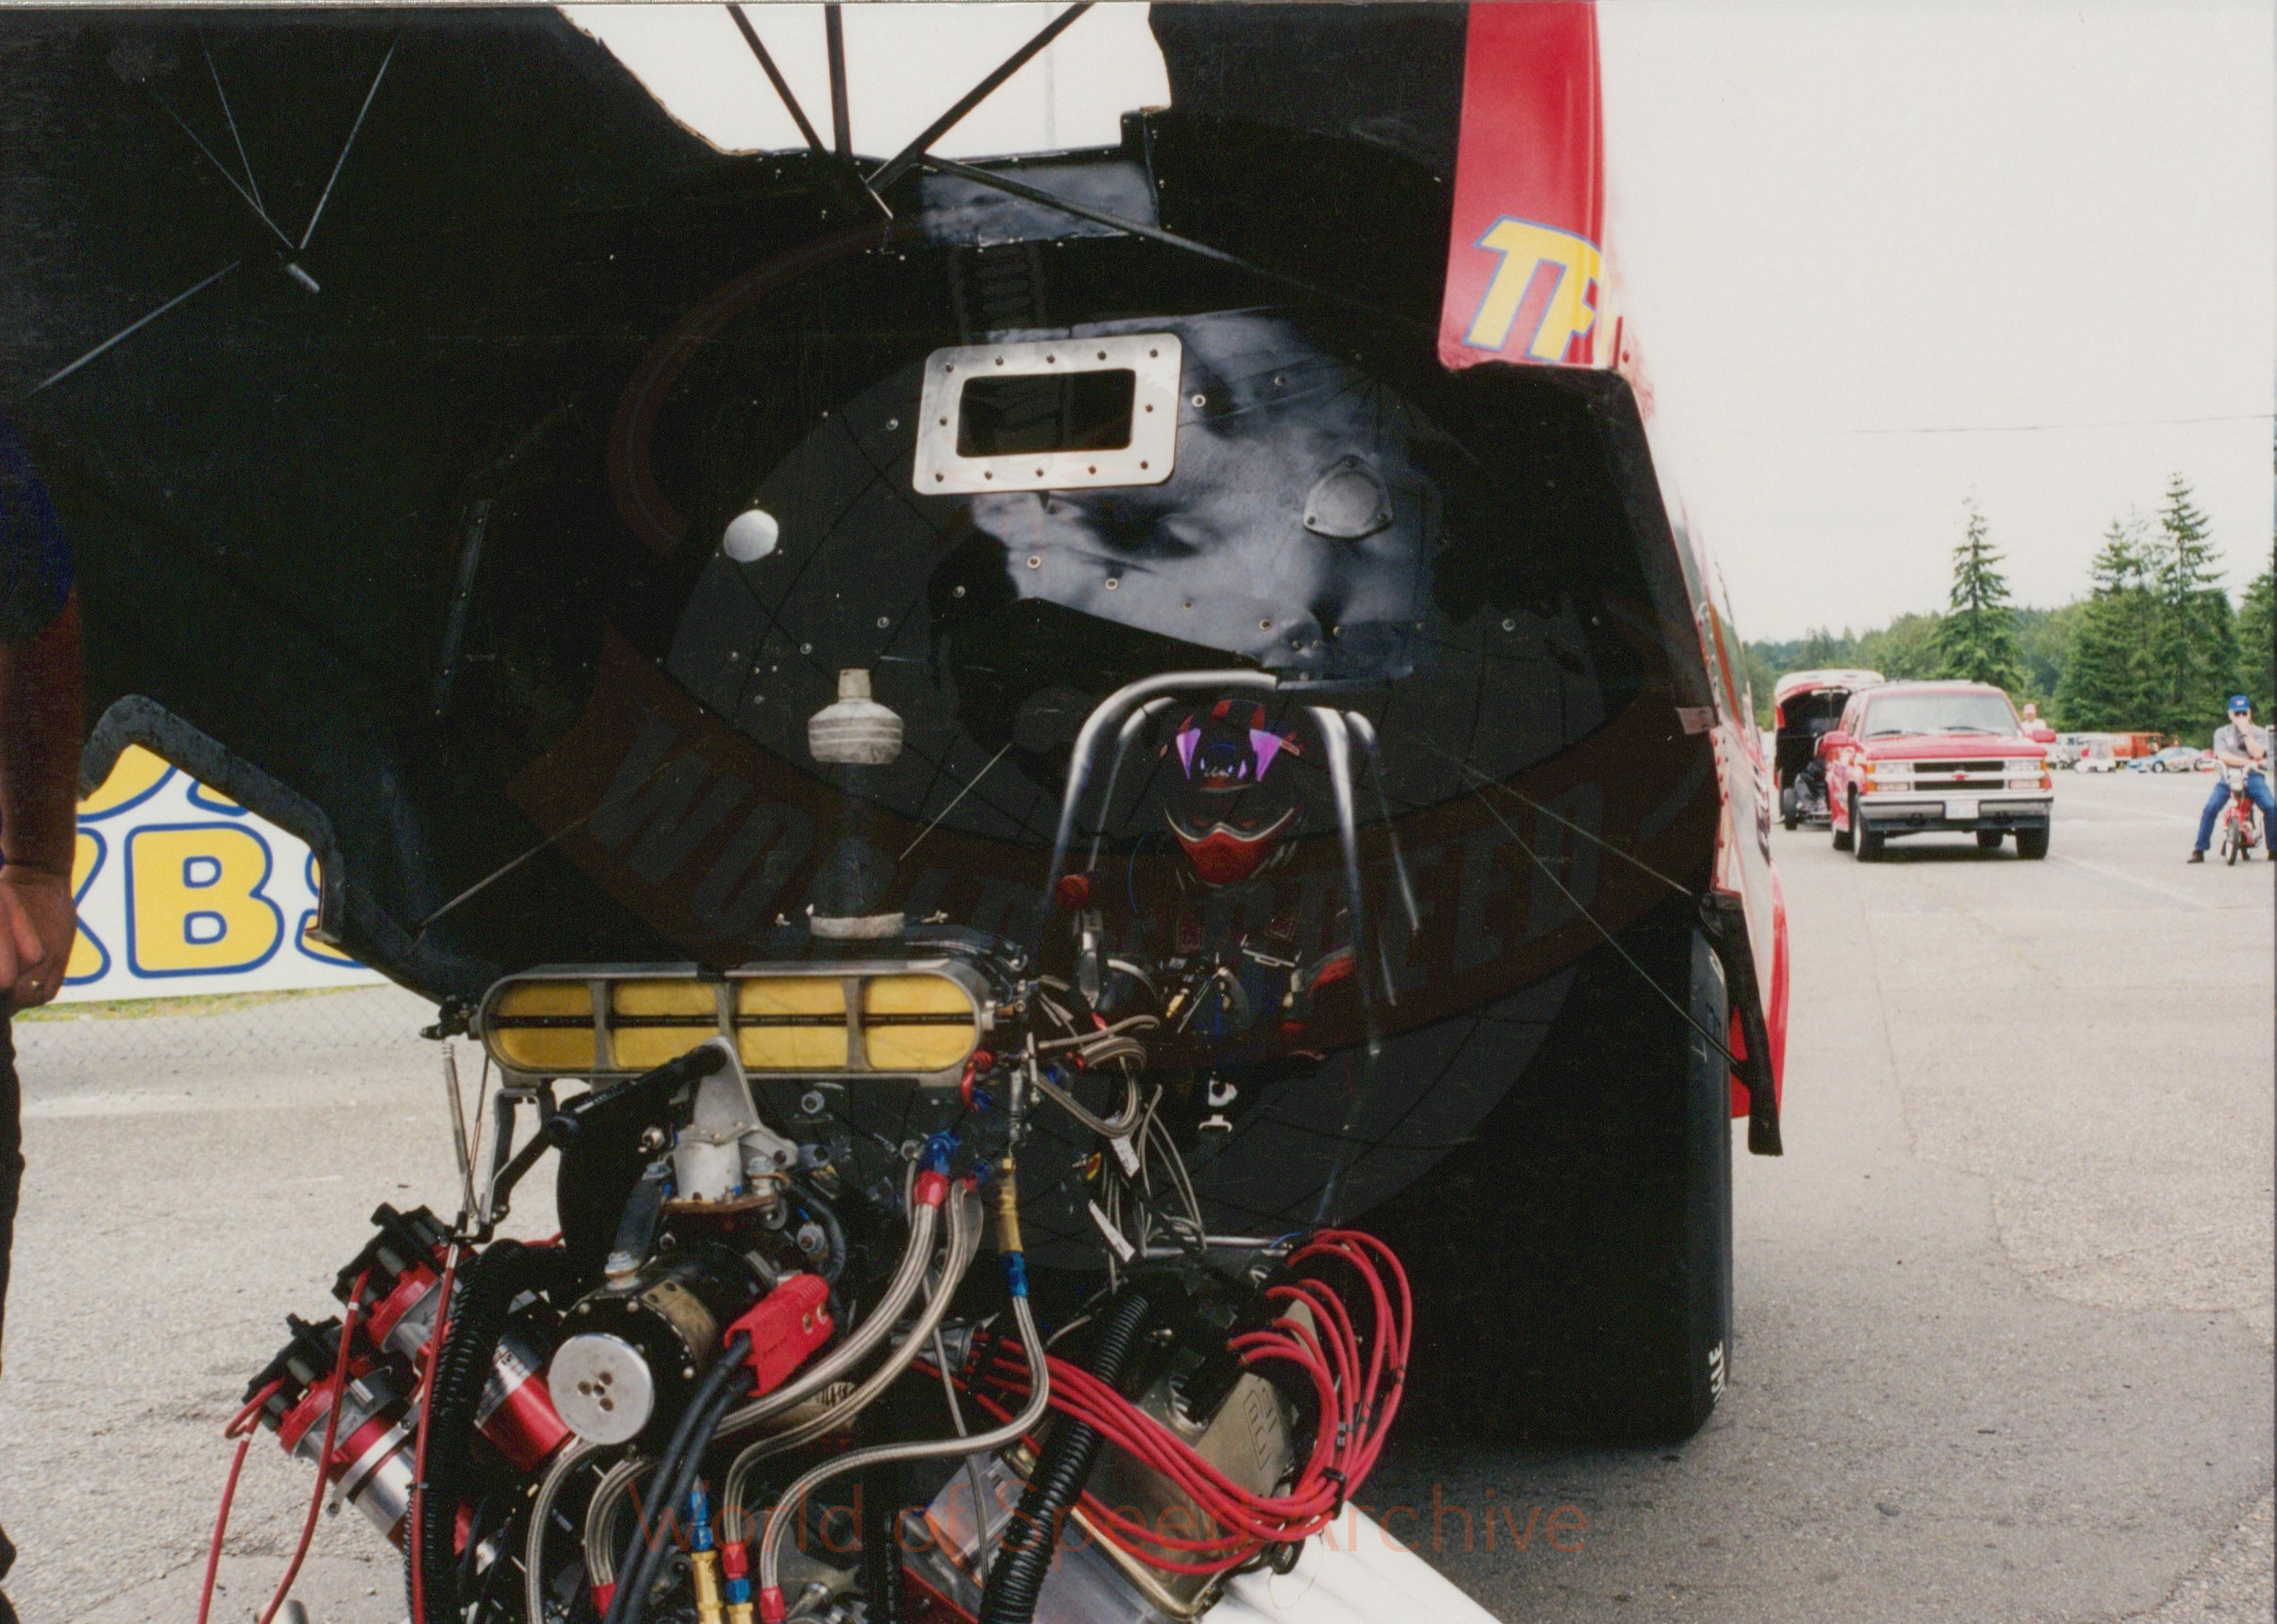 B2-S2-G2-F3-001 - Funny Car open with view of engine and seated driver with helmet